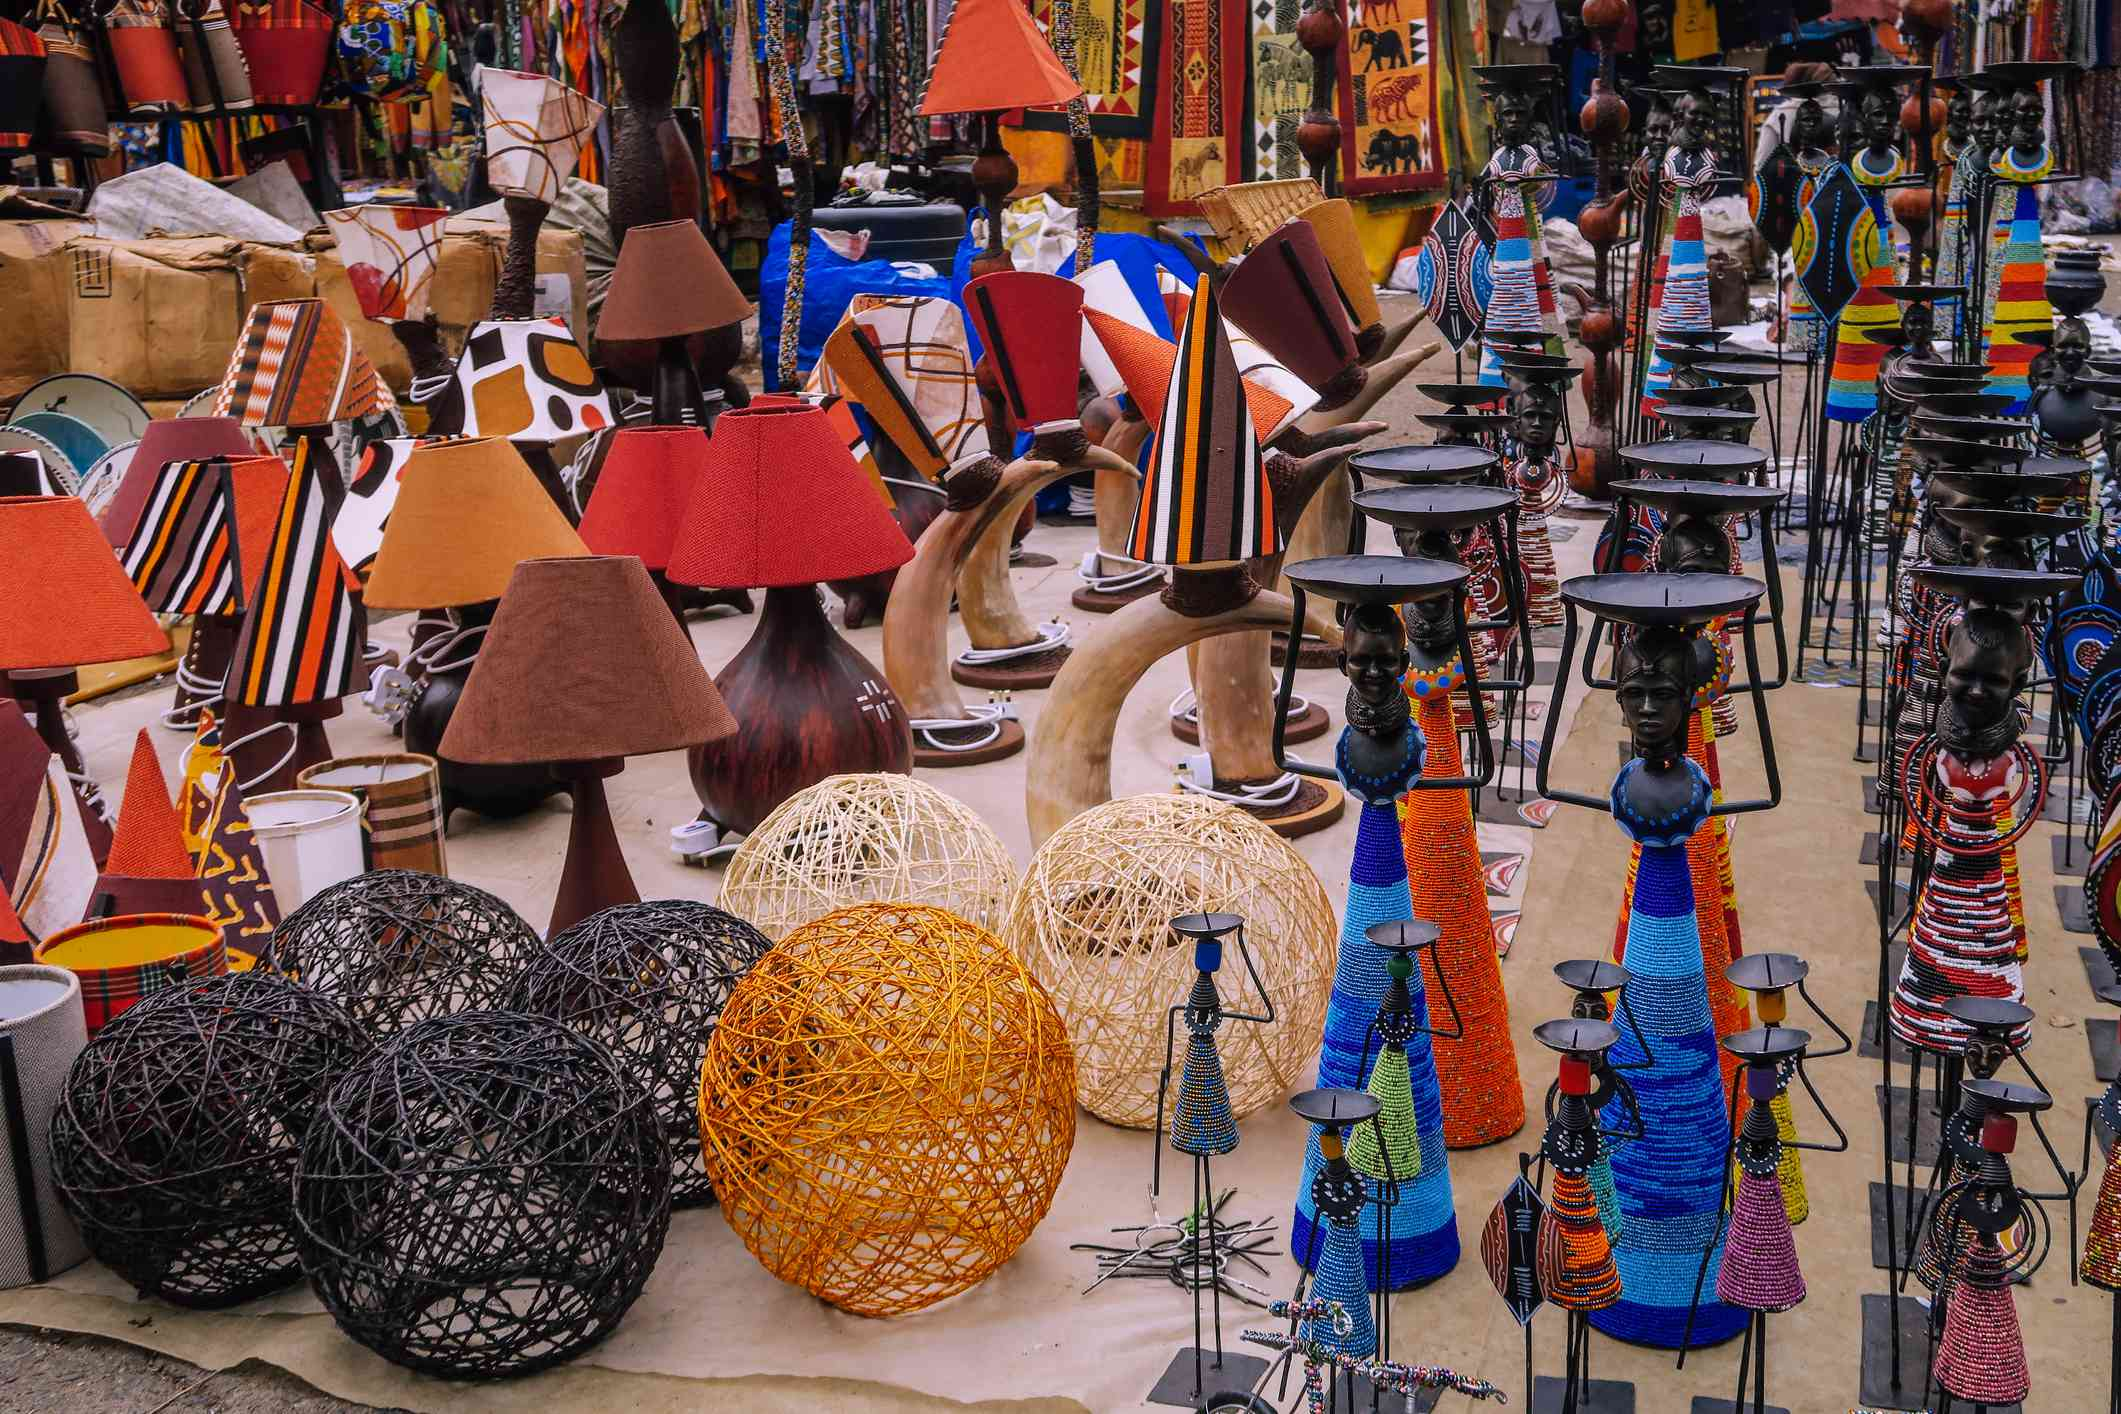 Vases and craft objects on a market in Nairobi, Kenya